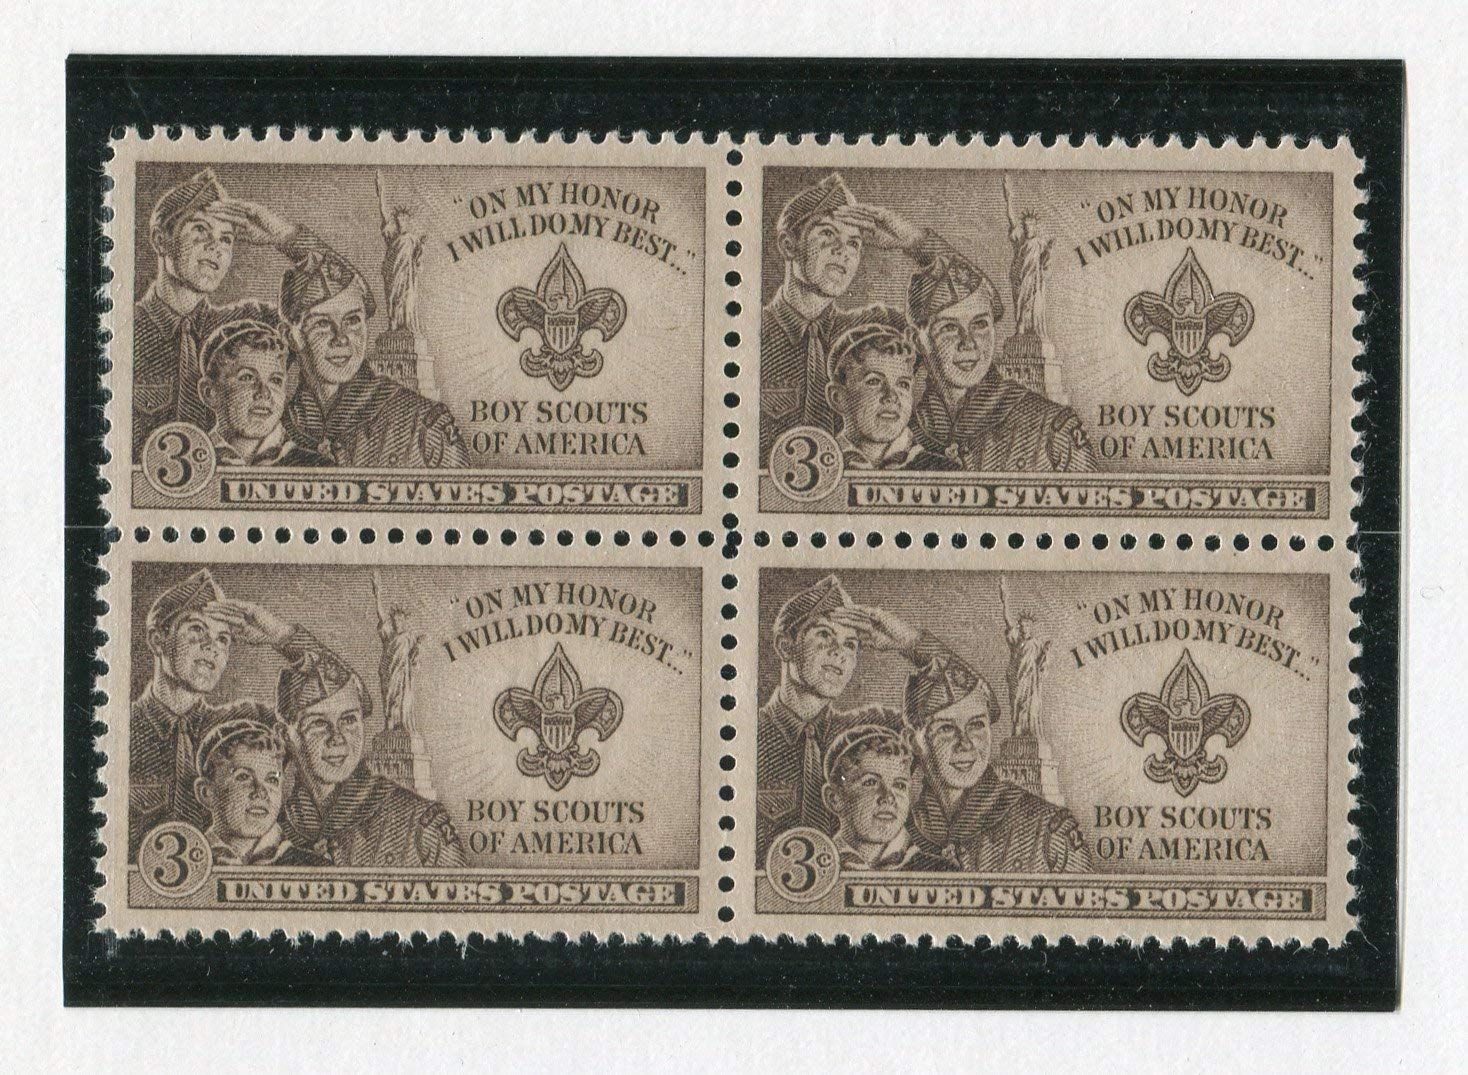 Boy Scouts Jamboree ~ Strengthening the Army of Liberty Scott #995 Block of 4 x 3/¢ US Postage Stamps